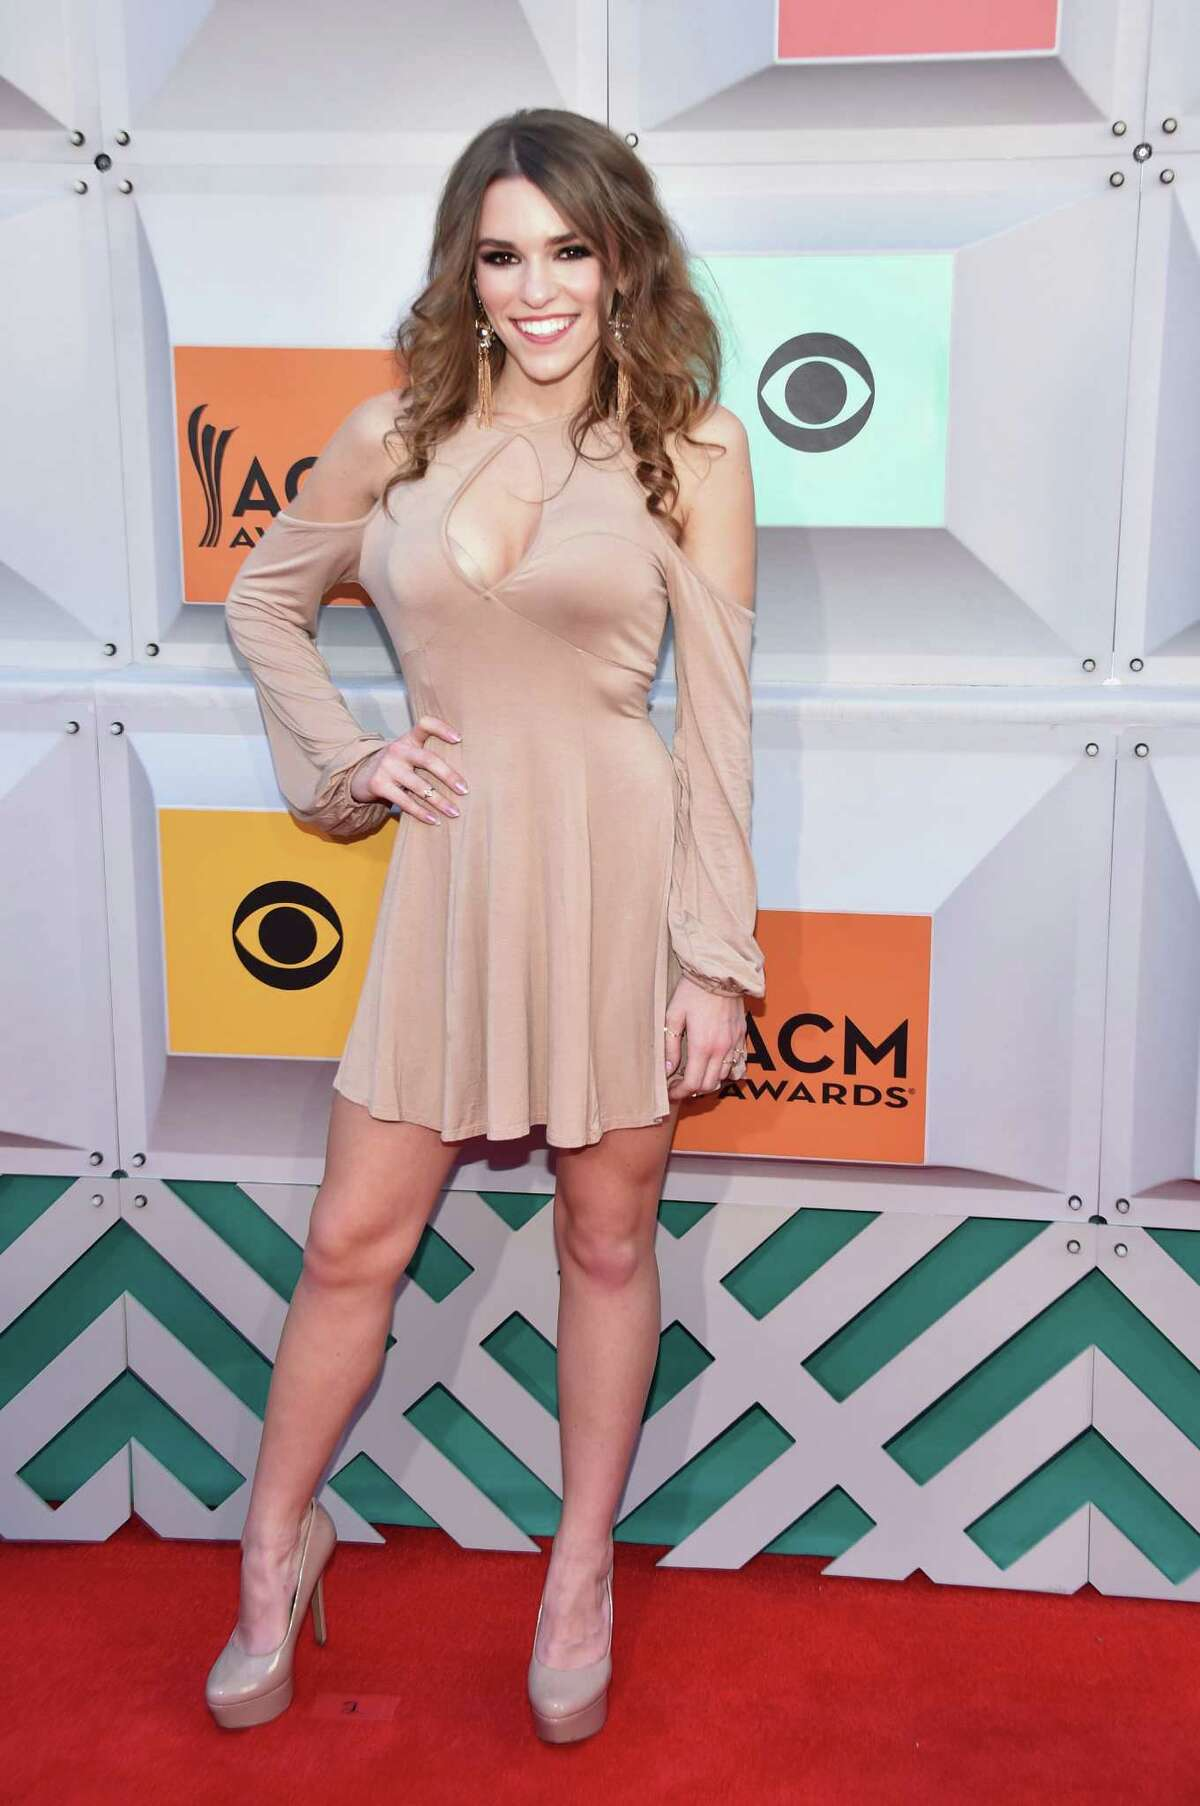 Worst: Amymarie Gaertner This look could go either pirate or figure skater with the addition of a few accessories.